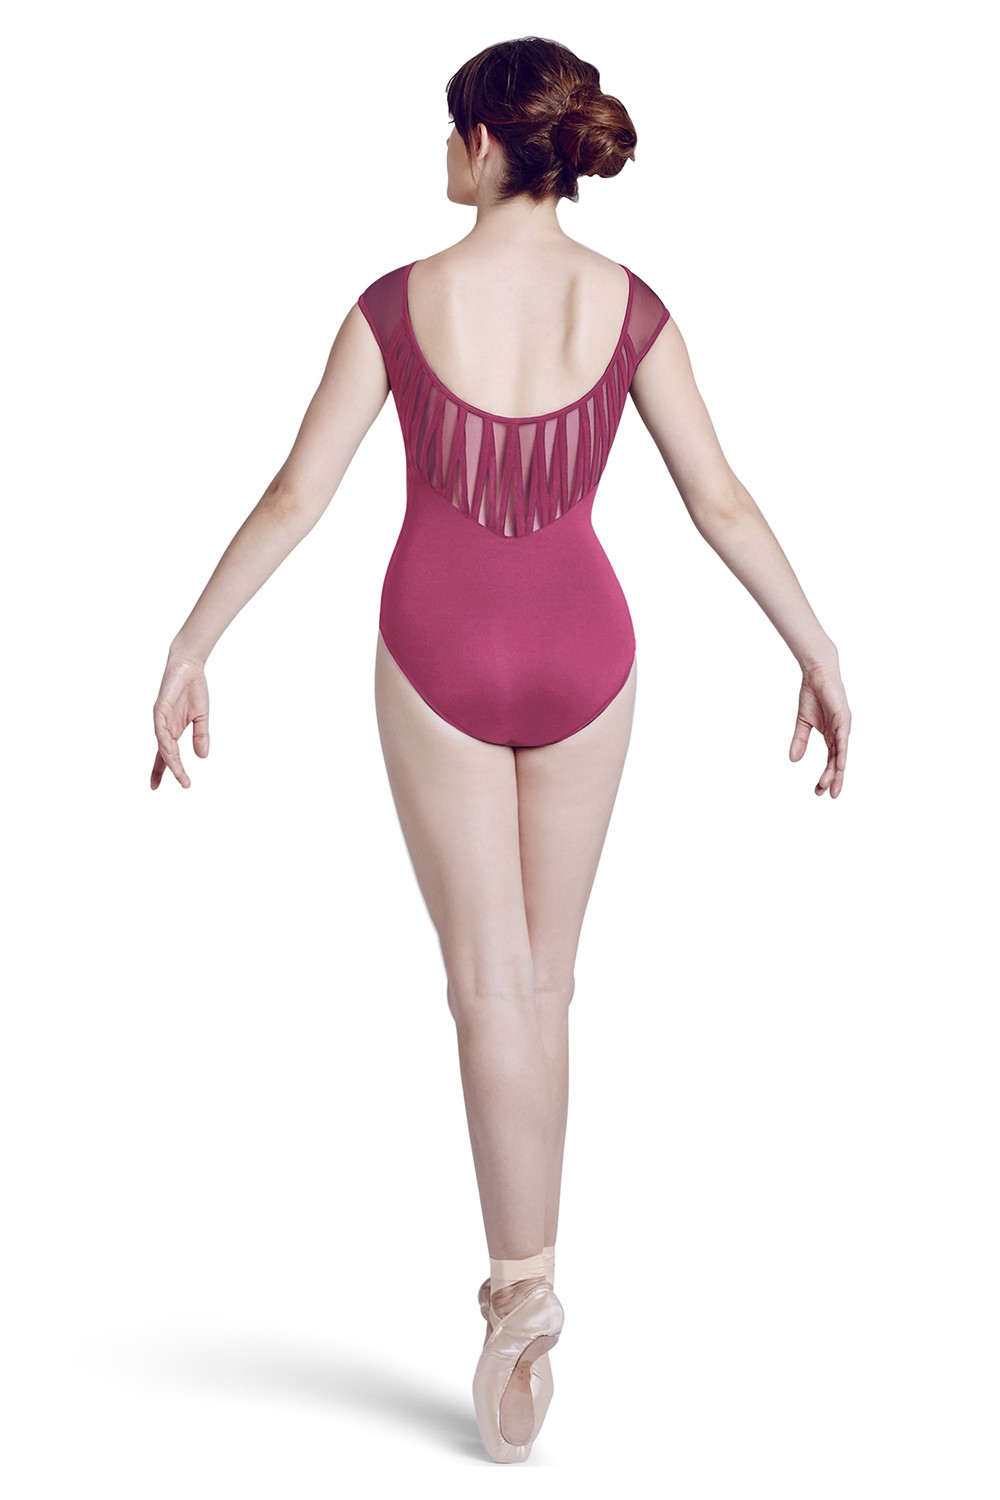 Cap Sleeve Leo Women's Dance Leotards